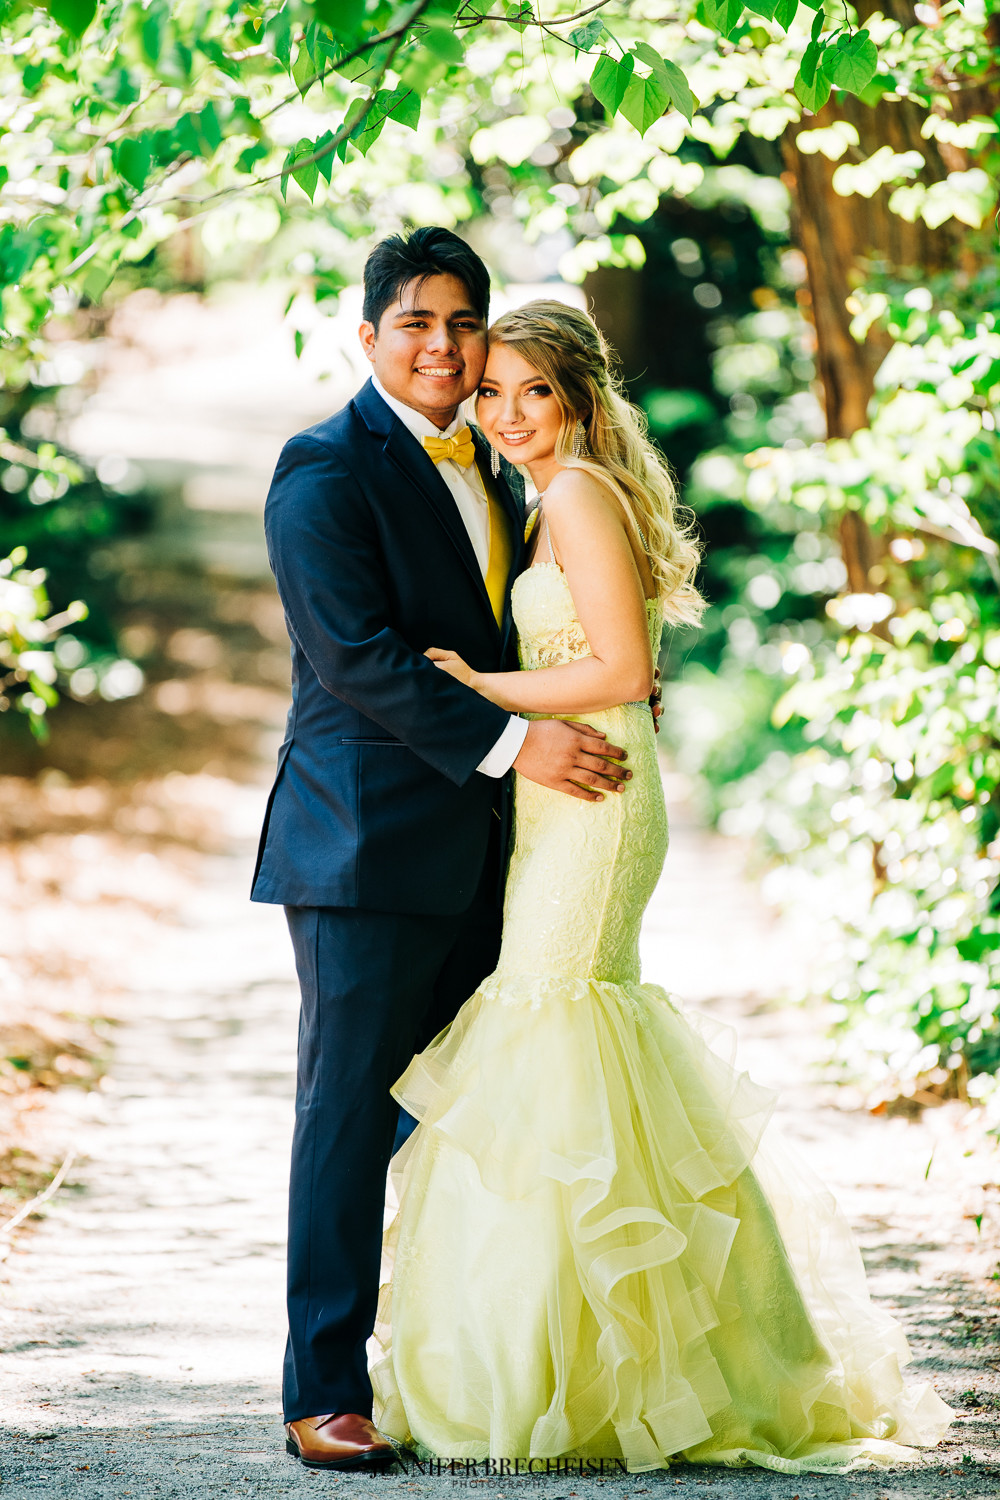 rockhillscprompictures, rockhillscpromphotographers